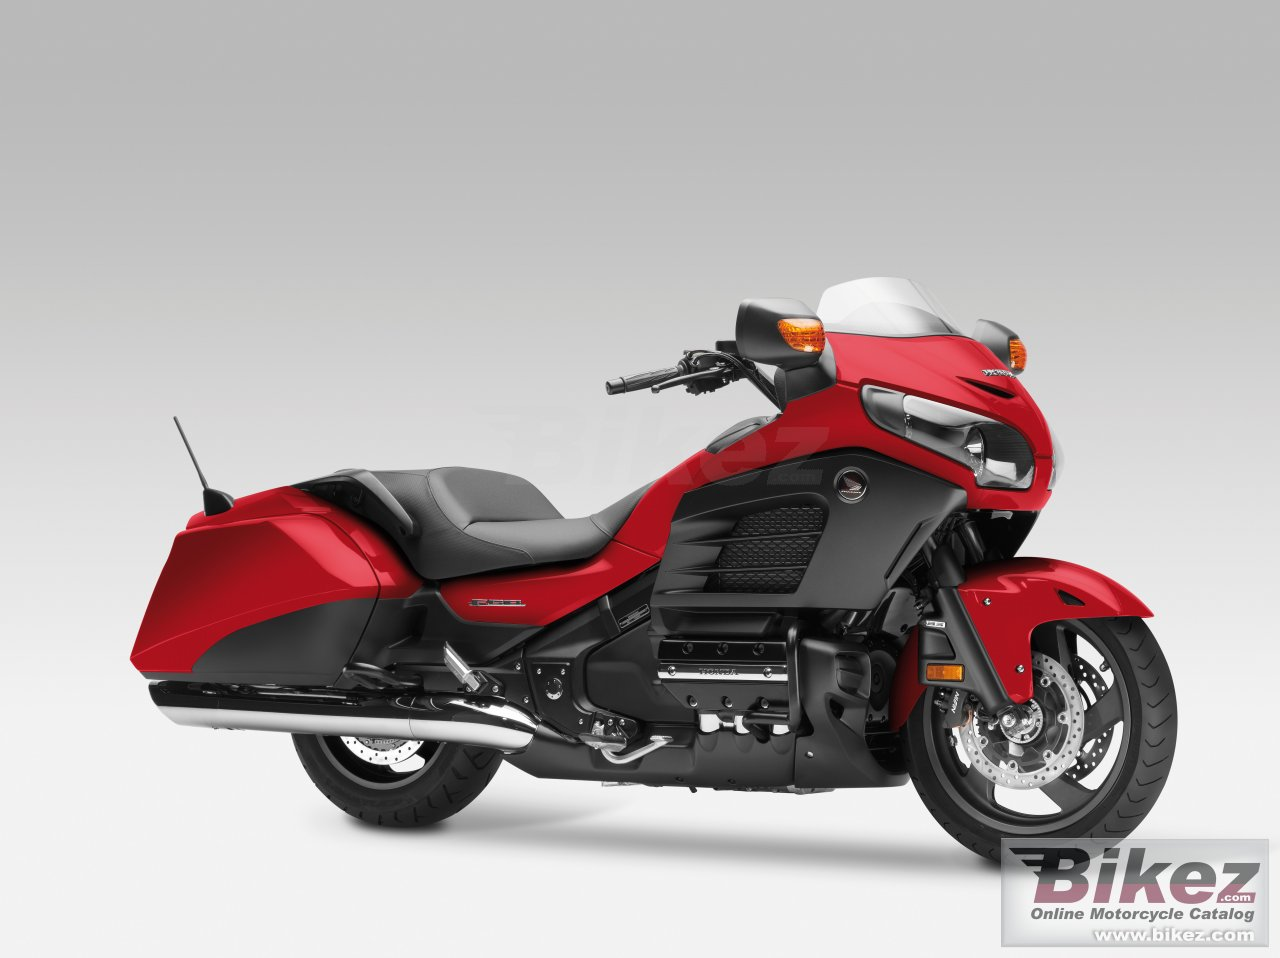 Big Honda gold wing f6b picture and wallpaper from Bikez.com